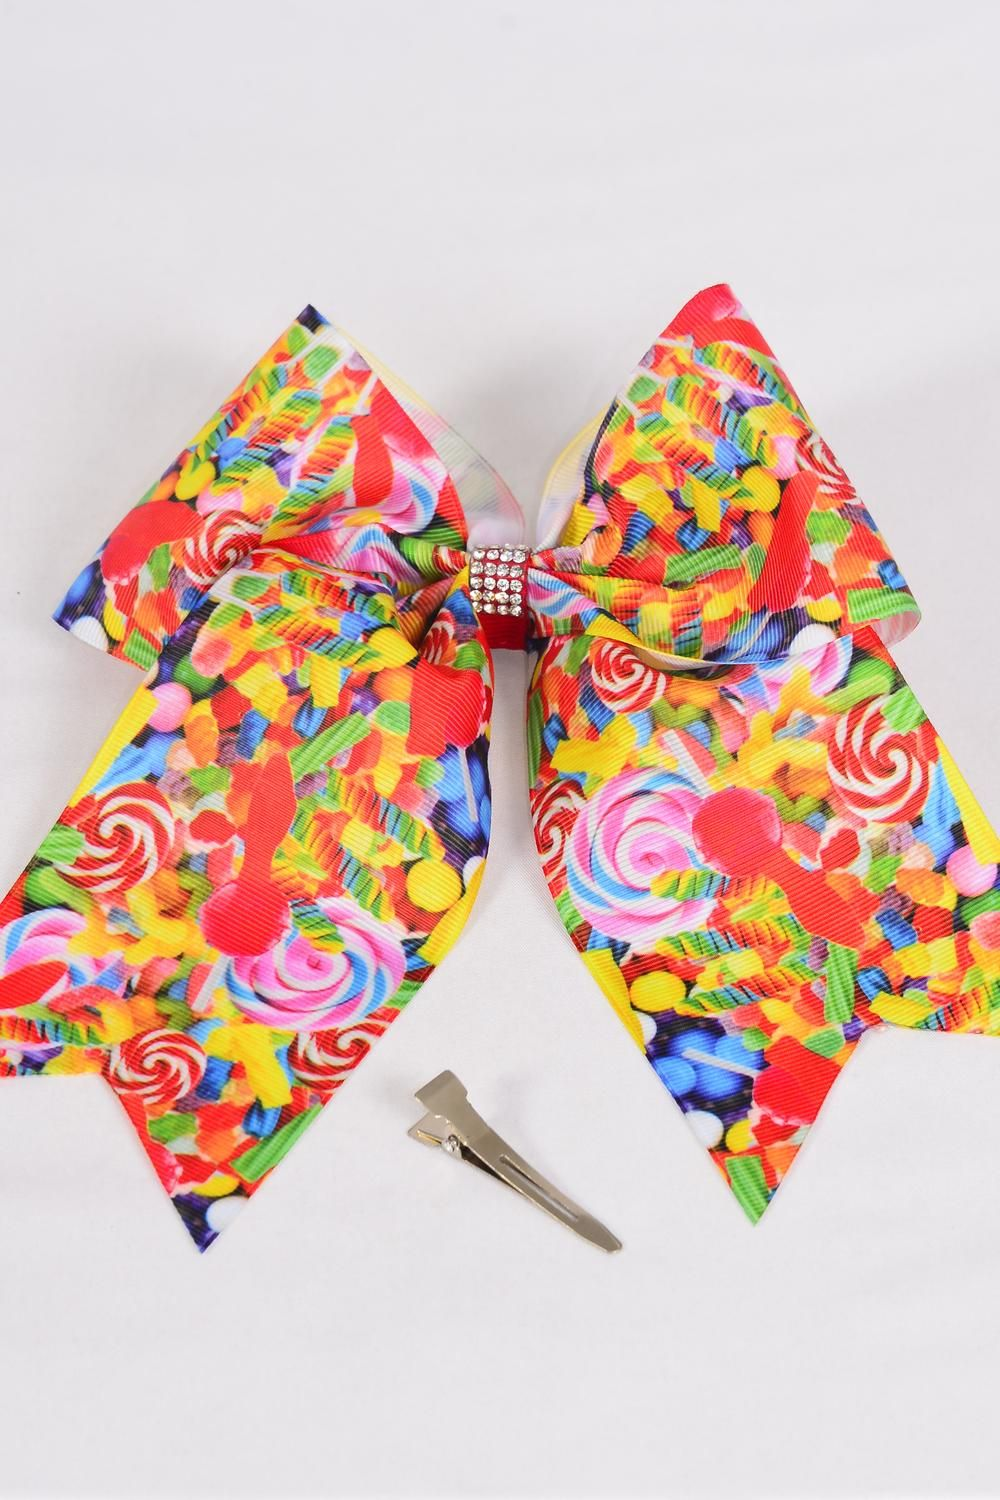 "Hair Bow Extra Jumbo Long Tail Cheer Type Bow Lollipops Grosgrain Bow-tie/DZ **Alligator Clip** Size-7""x 6"" Wide,Clip Strip & UPC Code"